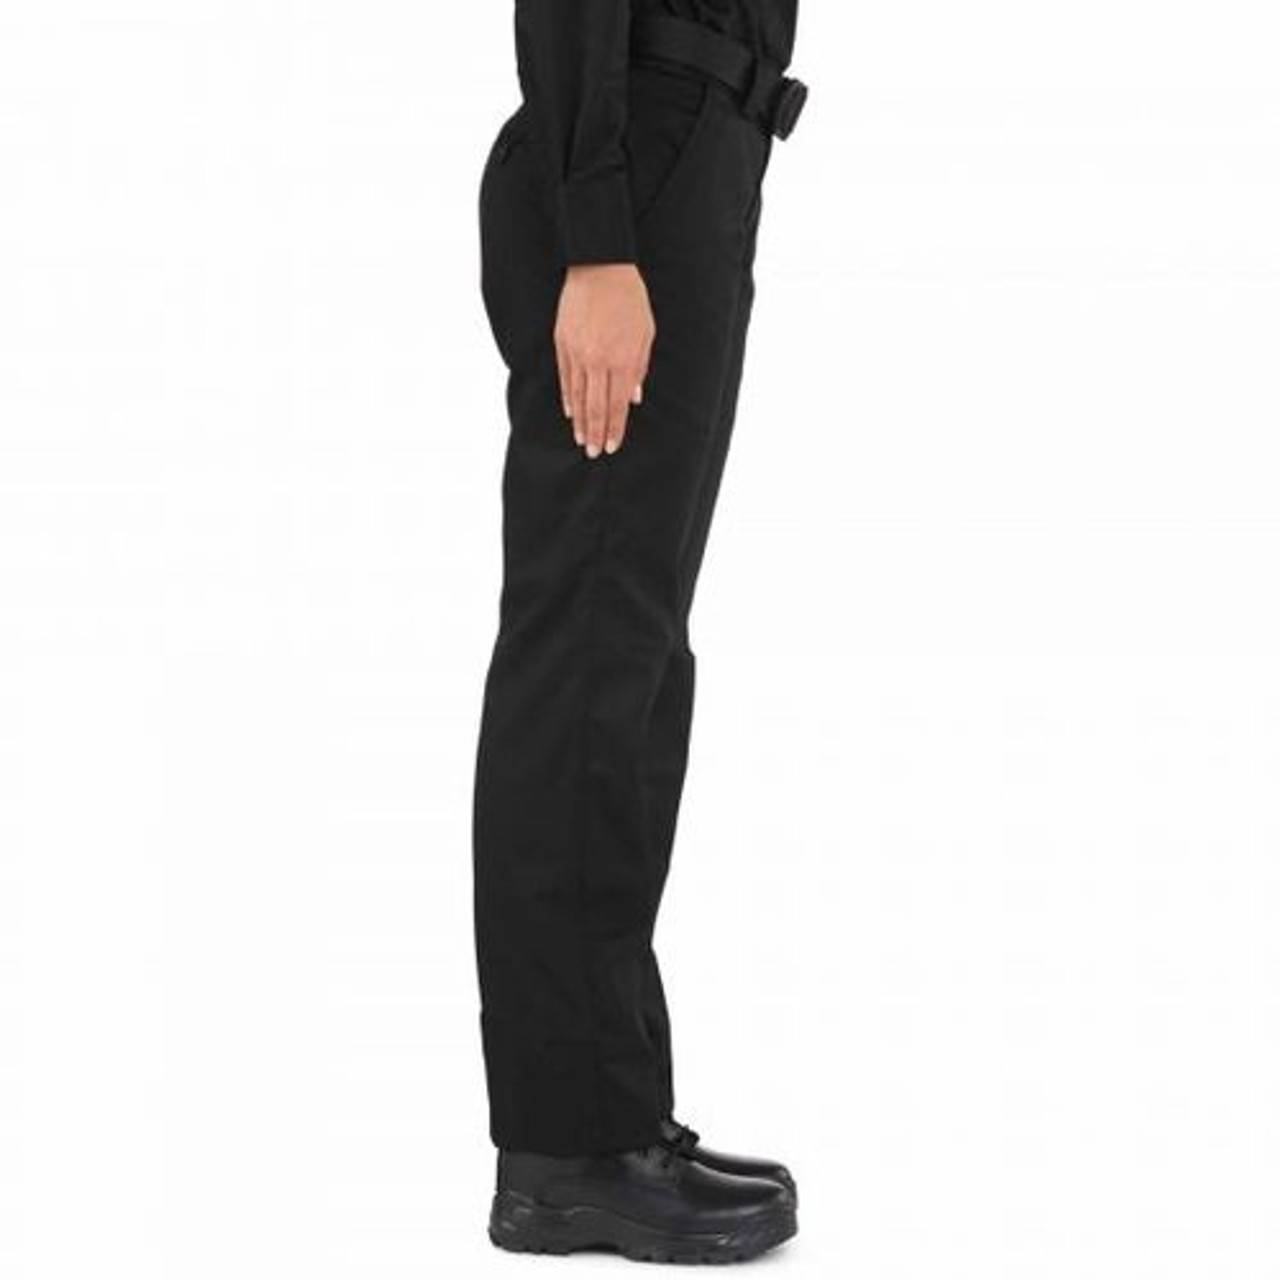 5.11 Tactical 64304 Women's Twill PDU Class-A Uniform Pants, Classic/Straight Fit, Polyester/Cotton, available in Black, Midnight Navy Blue, and Sheriff Green